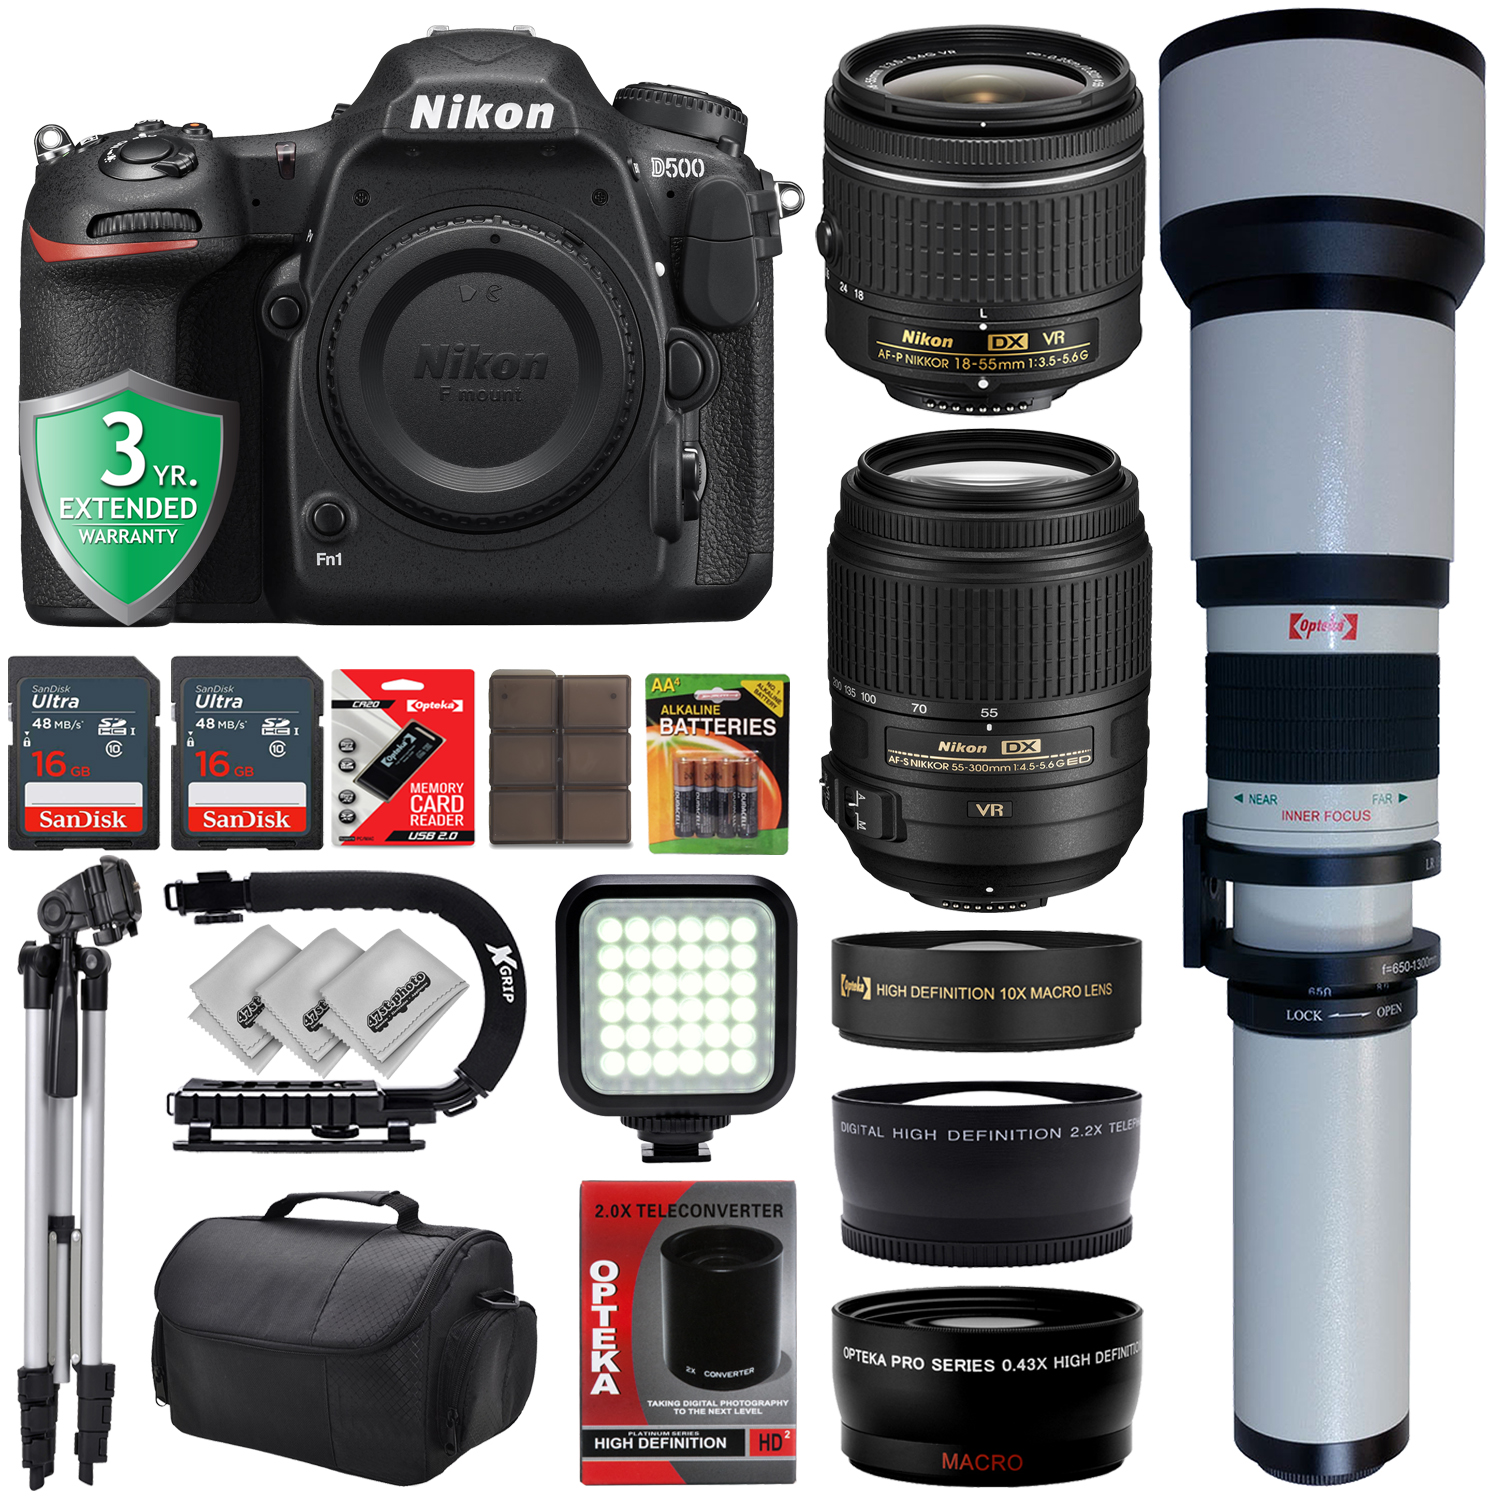 Nikon D500 4K Digital SLR Camera w/ 6 Lens - 18 to 2600mm - 32GB - 35PC Bundle - Nikon AF-P 18-55mm VR Lens - Nikon AF-S 55-300mm VR Lens - Opteka 650-1300mm Zoom - 10x Macro - 0.43x Wide - 2.2x Tele